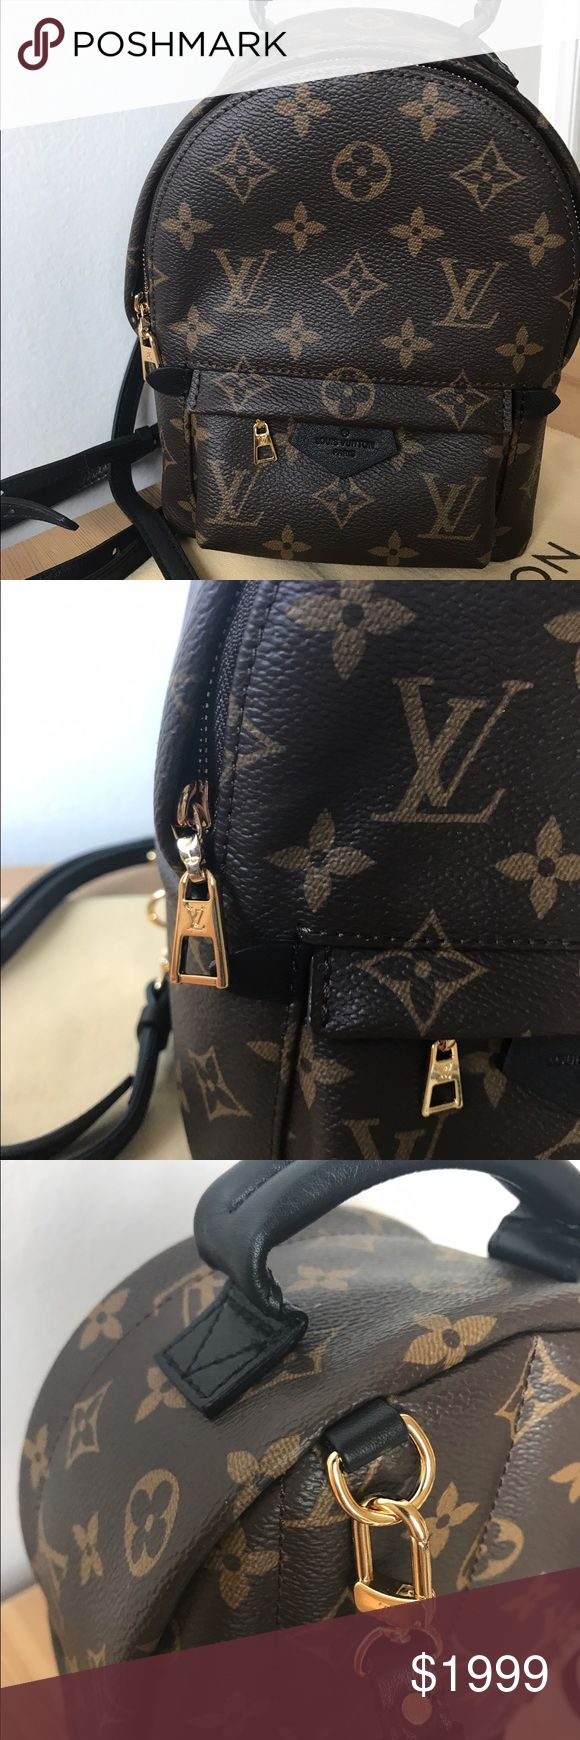 Like new LV Palm Springs Mini Backpack ❤️Authentic ❤️Only used once. Looks brand new. NO signs of wear. Perfect condition. Comes with dust bag only. Might find the box later.  🌶No offers🌶please don't ask me for authenticity card. If you ever owned one, you would know LV bags Don't come with any authenticity card. Date code tag  attached inside. Date code FL4125. Serious buyers only! Lower on Ⓜ️ Will list for a serious buyer. Louis Vuitton Bags Backpacks